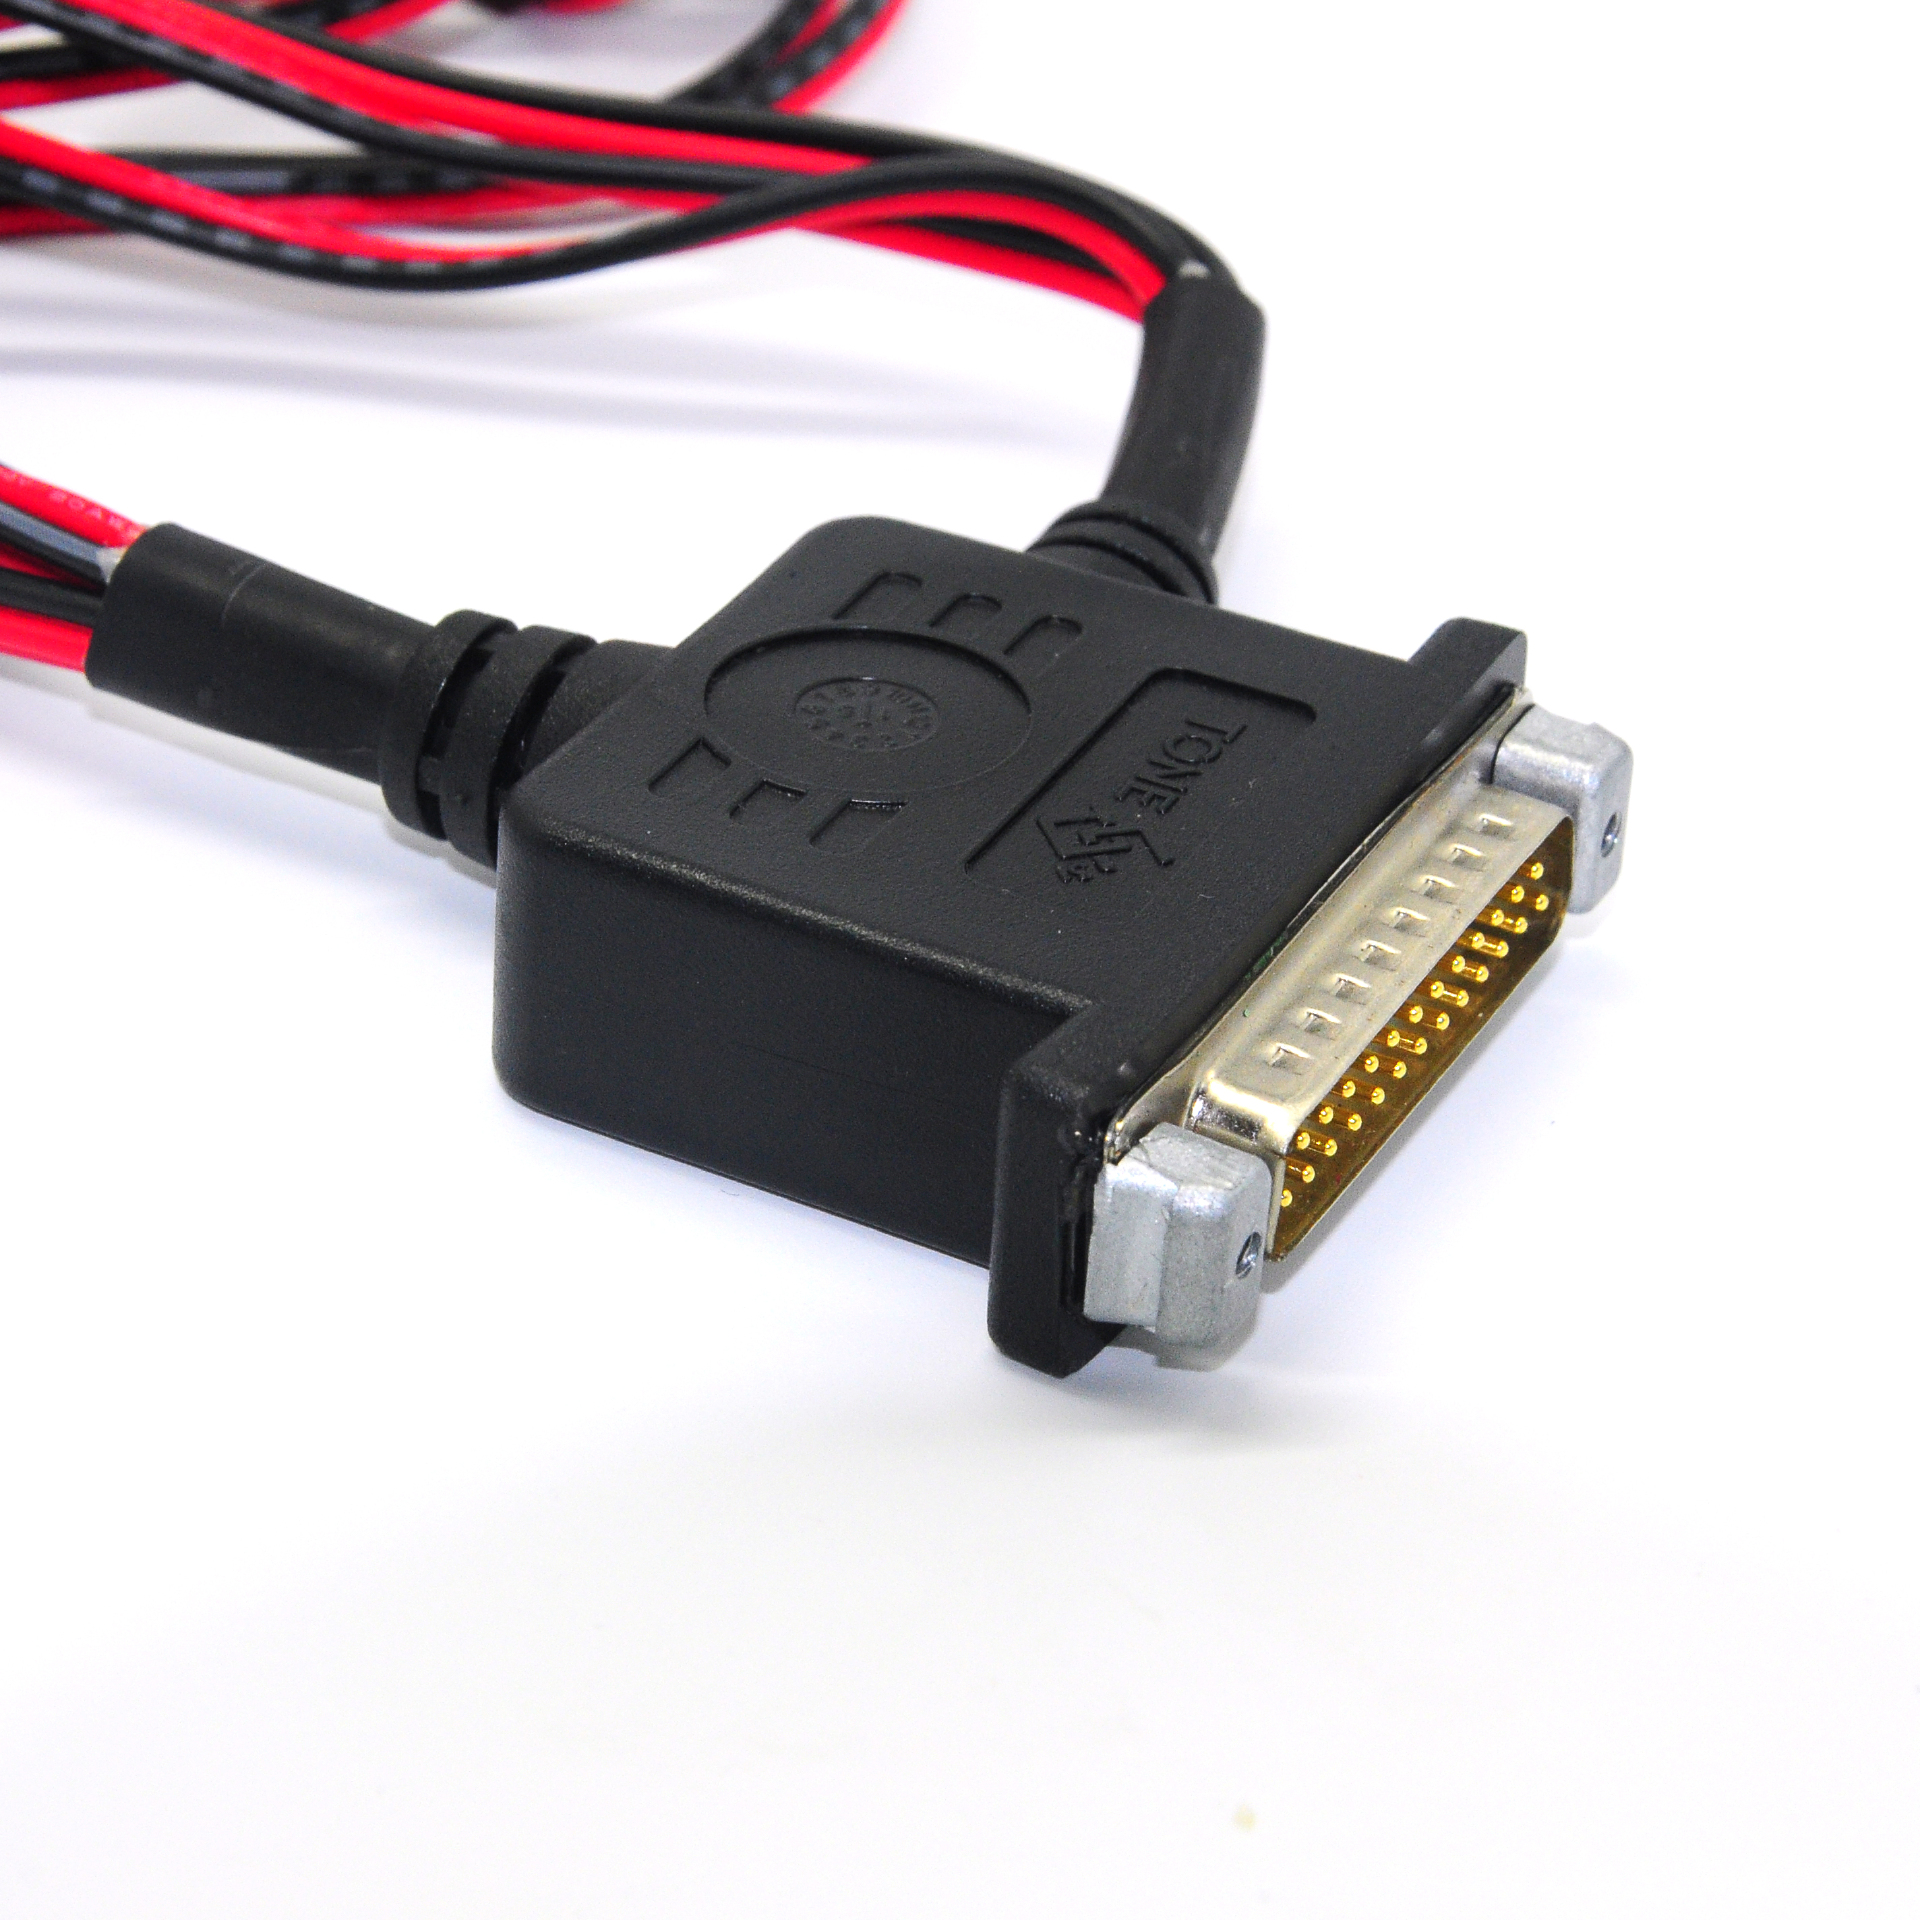 DB25PIN ECG medical equipment cable